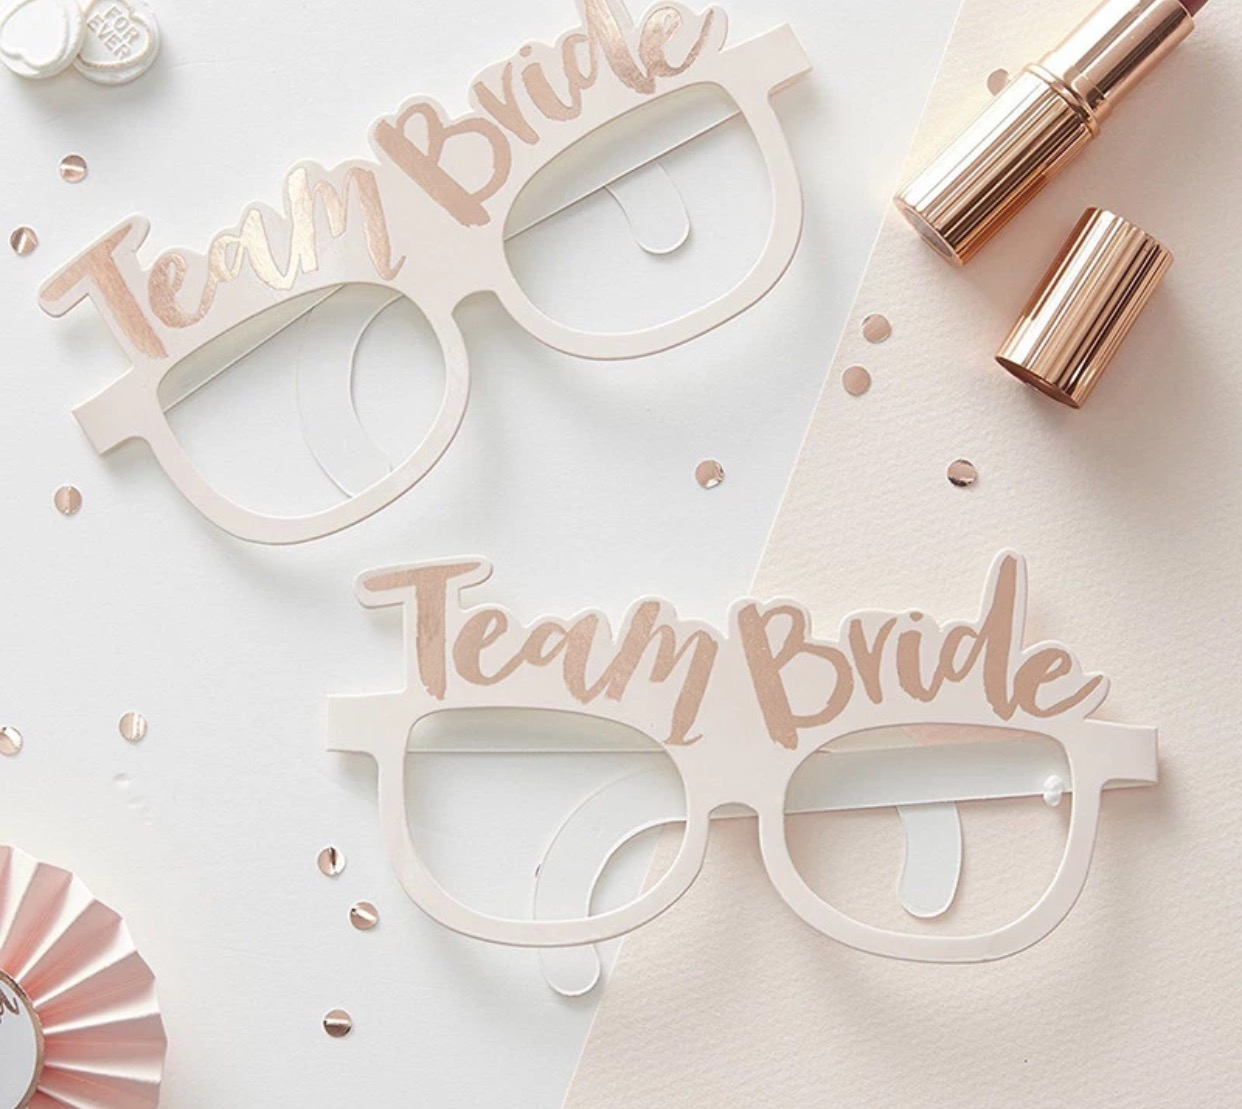 You might also like - Team Bride cardstock glasses in Pink and Rose Gold.